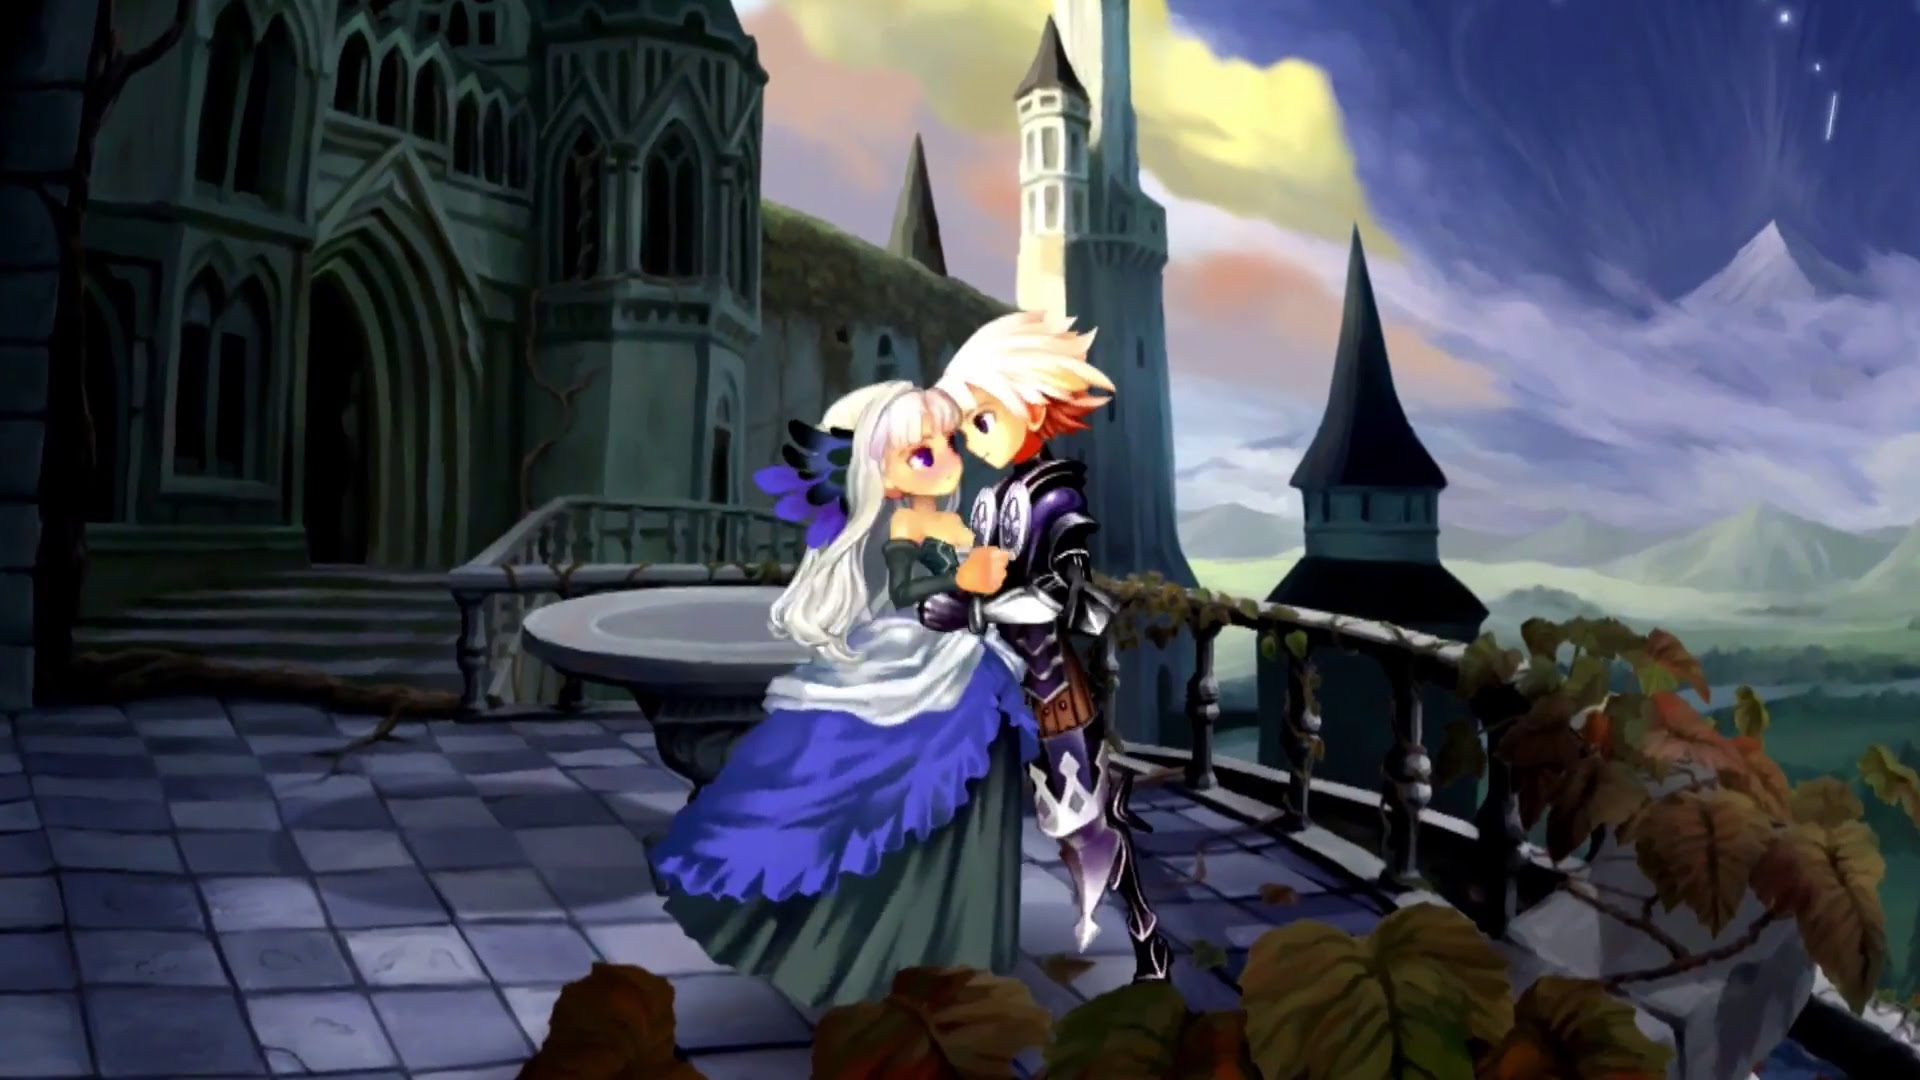 Anime Wallpaper For Ps Vita Odin Sphere Leifthrasir Review Wield Your Psyphers In